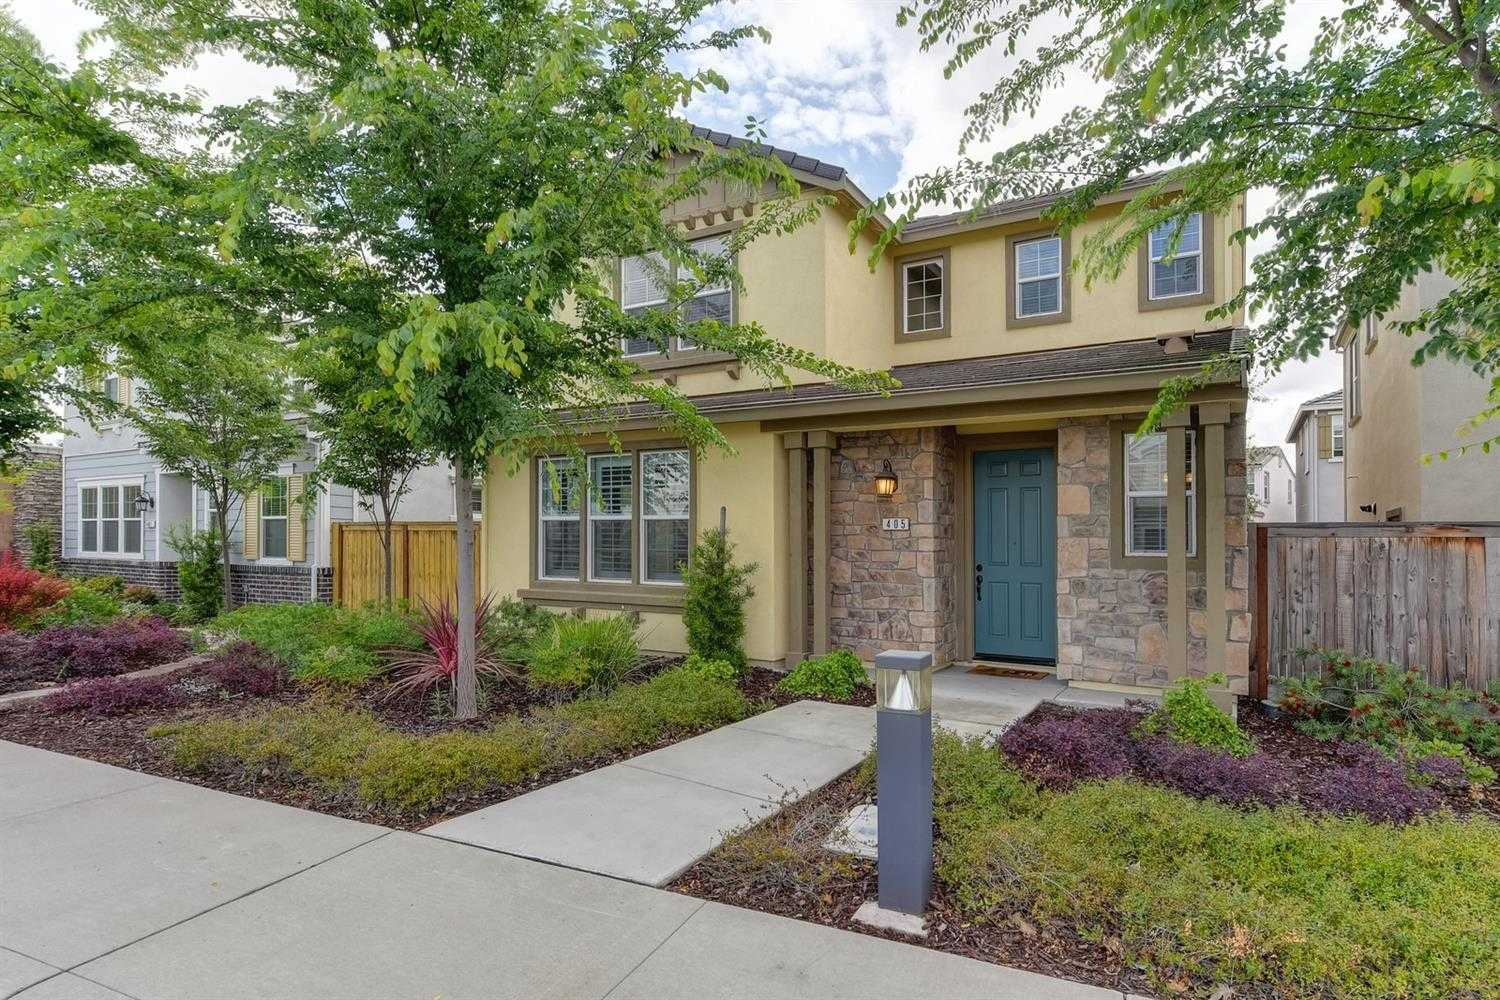 $499,000 - 3Br/3Ba -  for Sale in The Islands At Parkshore, Folsom